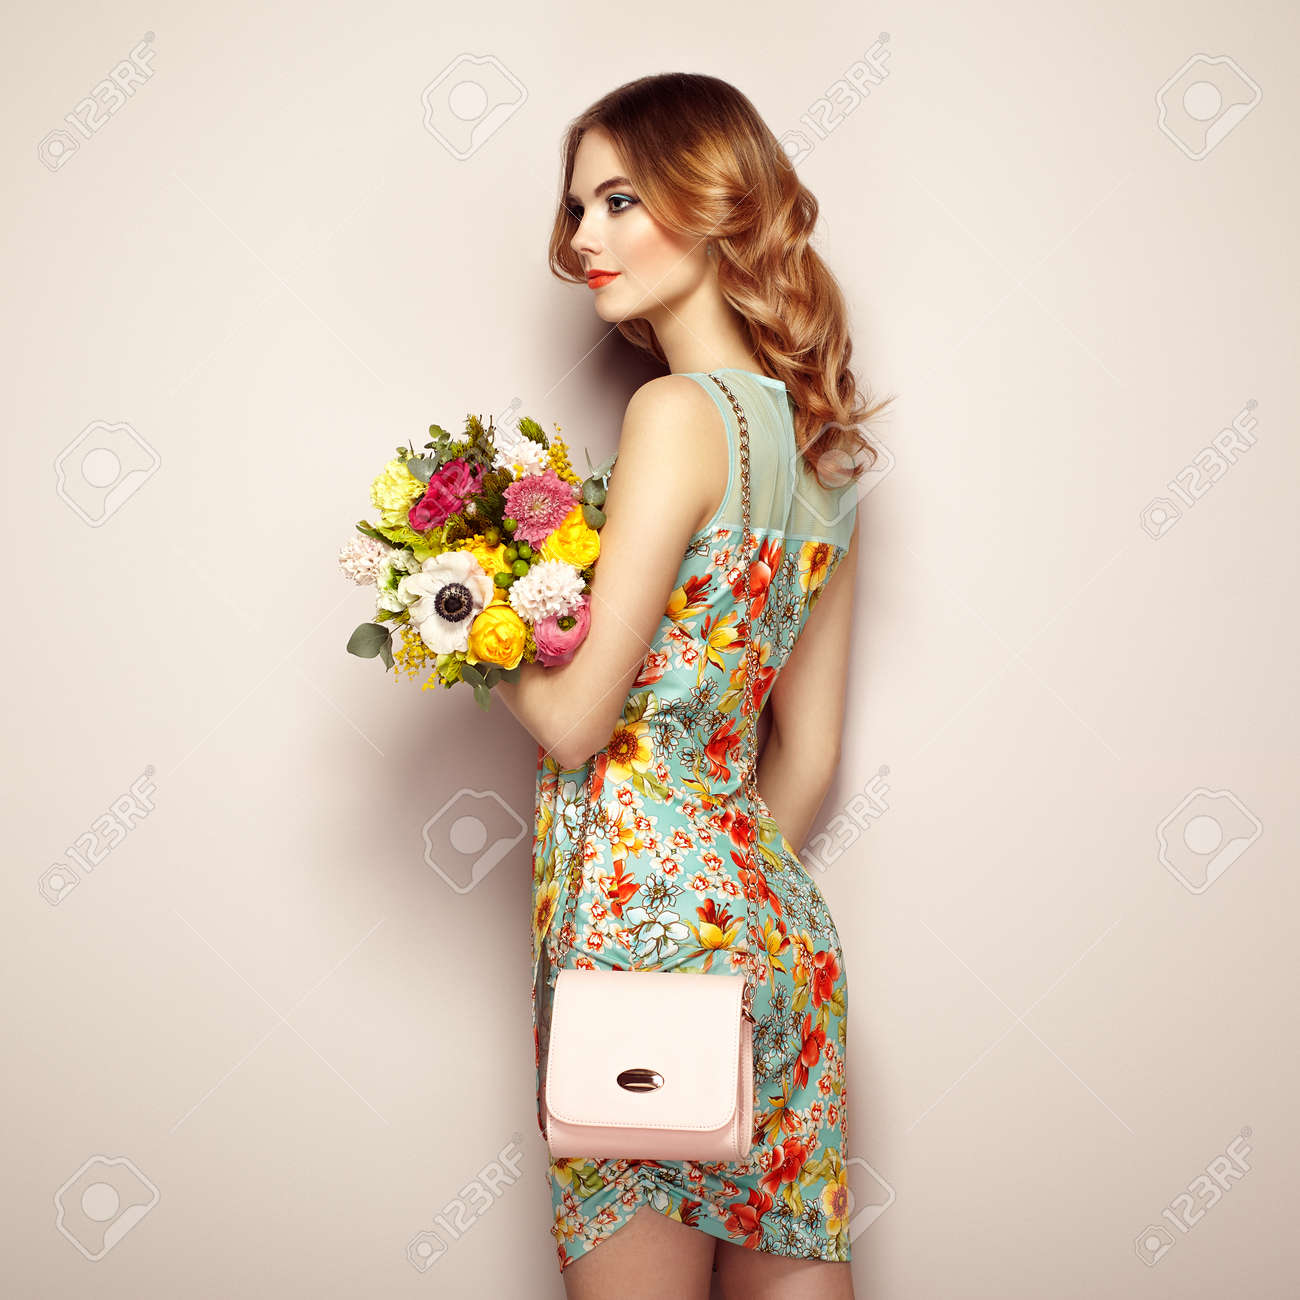 Blonde Young Woman In Elegant Floral Dress Girl Posing On A